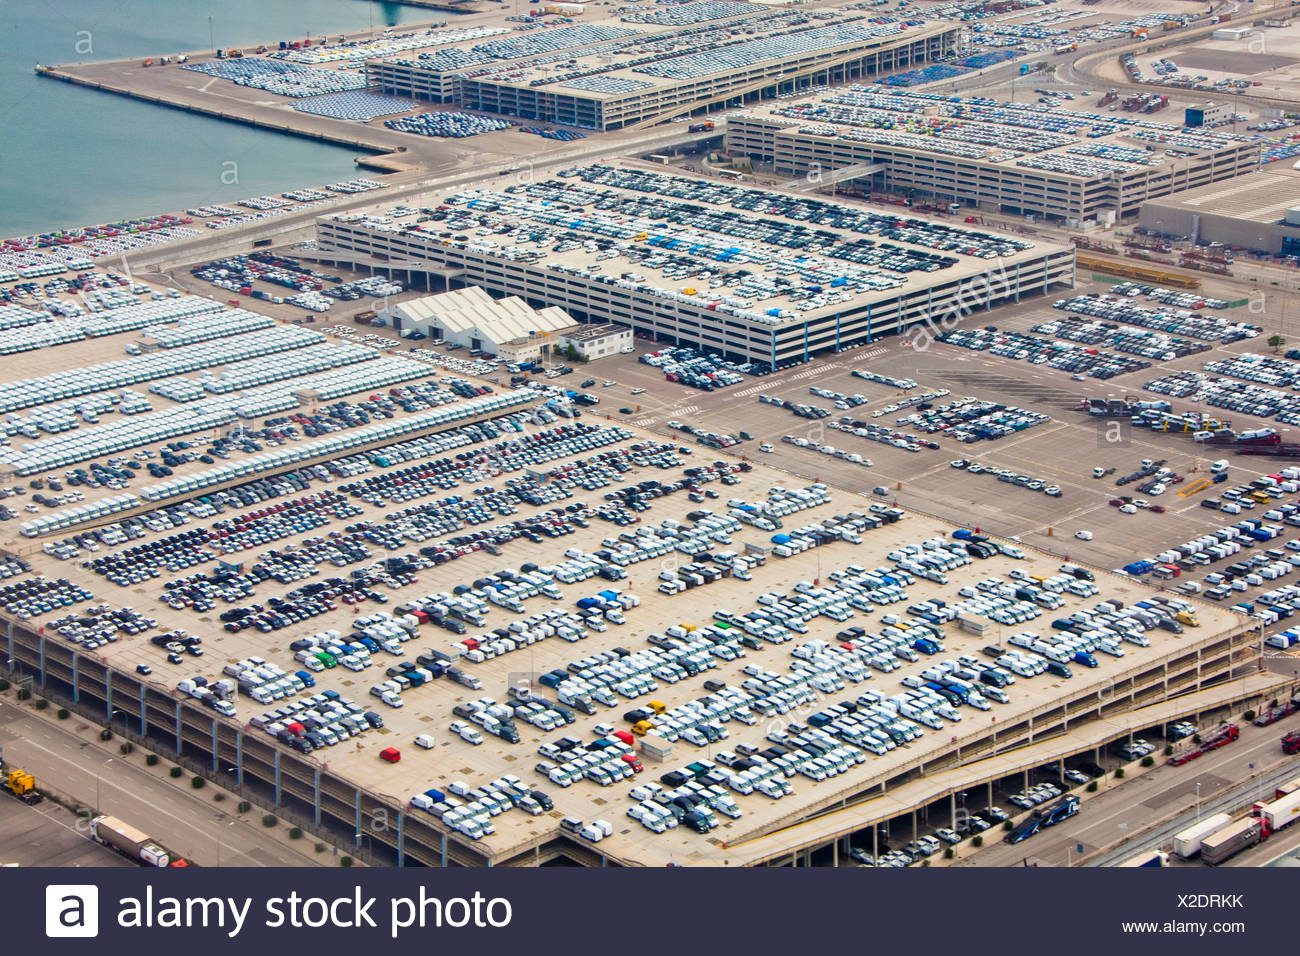 Spain, Barcelona, harbour, Port, cars, parking, export, aerial view, business - Stock Image